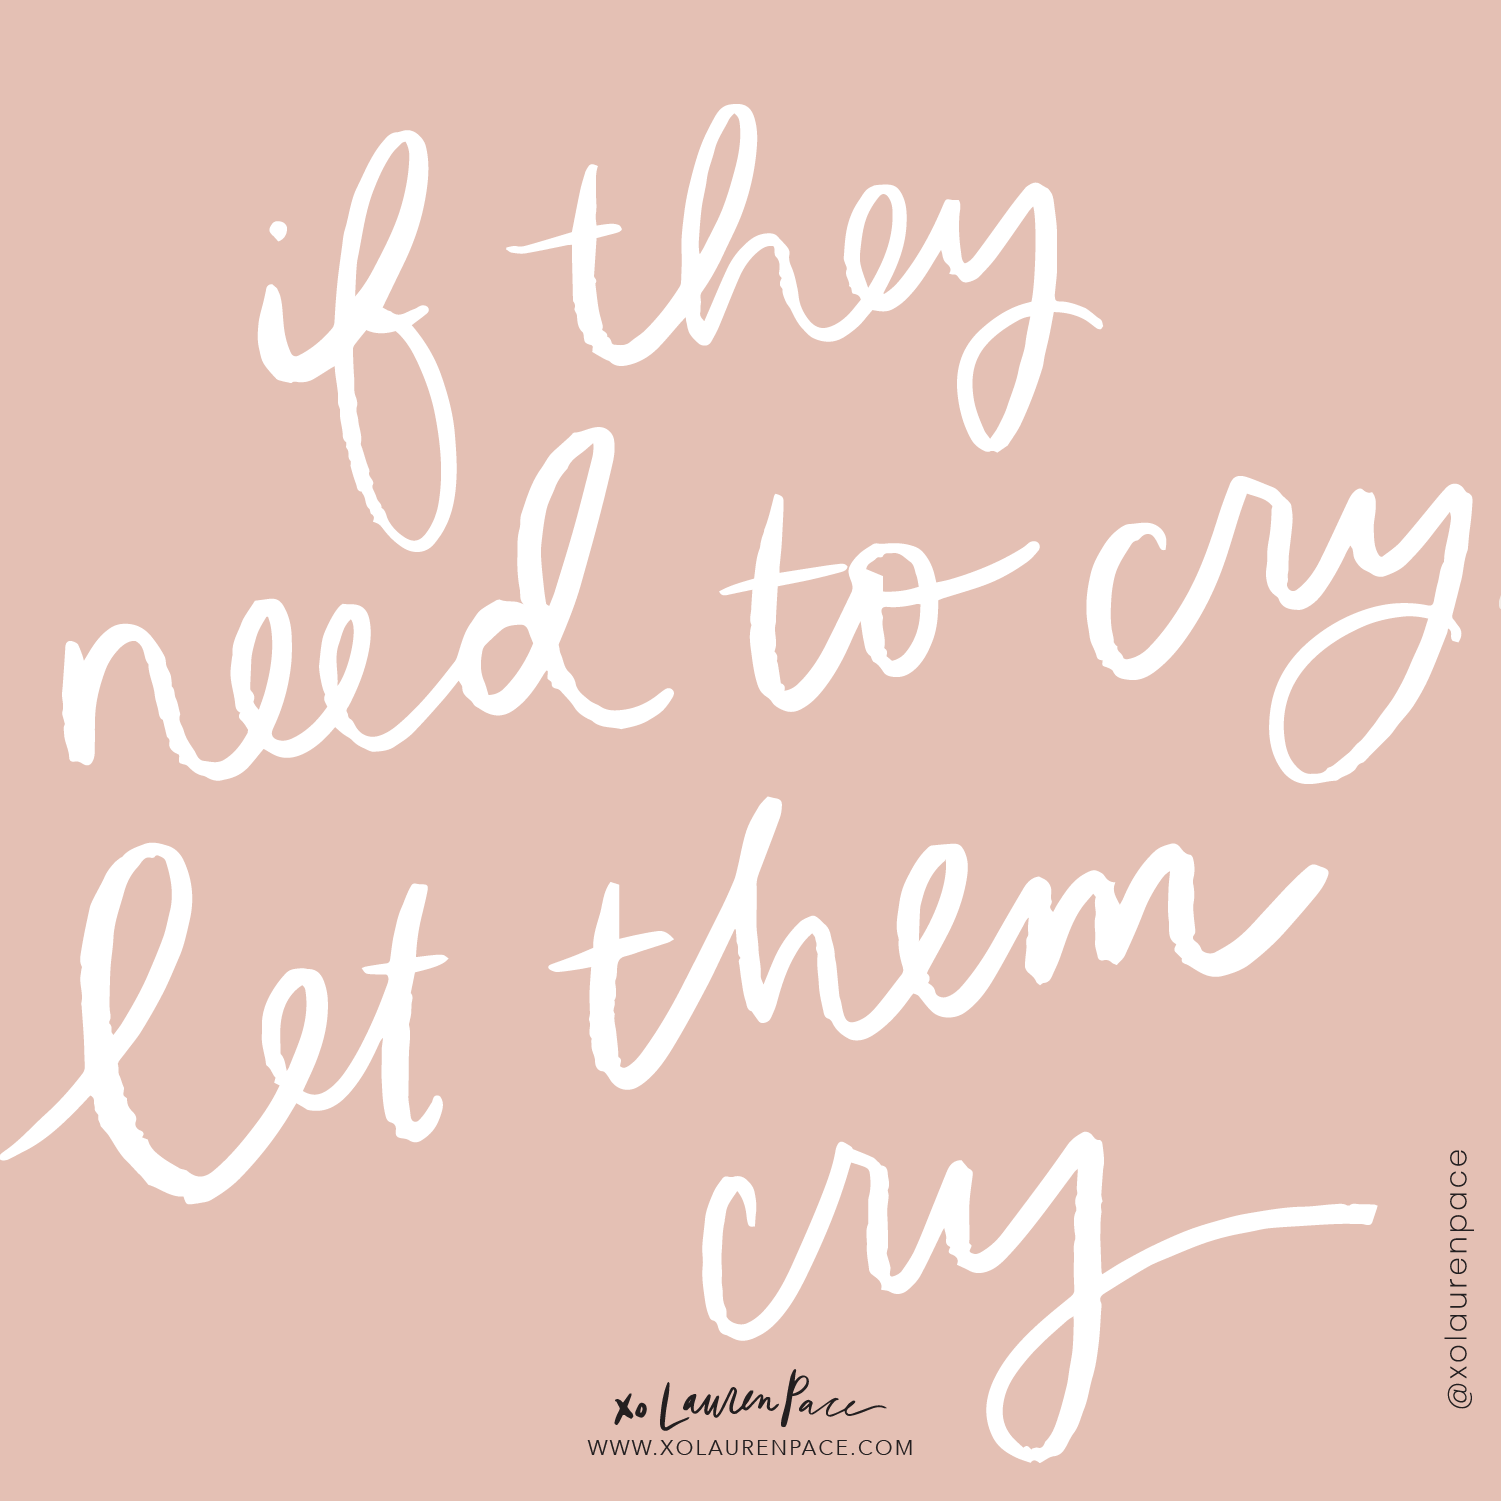 Crying stimulates endorphins, our feel-good hormone. And also, bottled up emotions turn into tantrums.  . A few tears here and there all day long... or a VOLCANIC eruption at the dinner table. Your choice.  A lot of times it's our go-to reaction to say, don't cry, you don't need to cry, you're fine, stop crying... instead, try, it's okay to cry. Let it all out. You can take a break and cry when you're ready you can come back and join us.